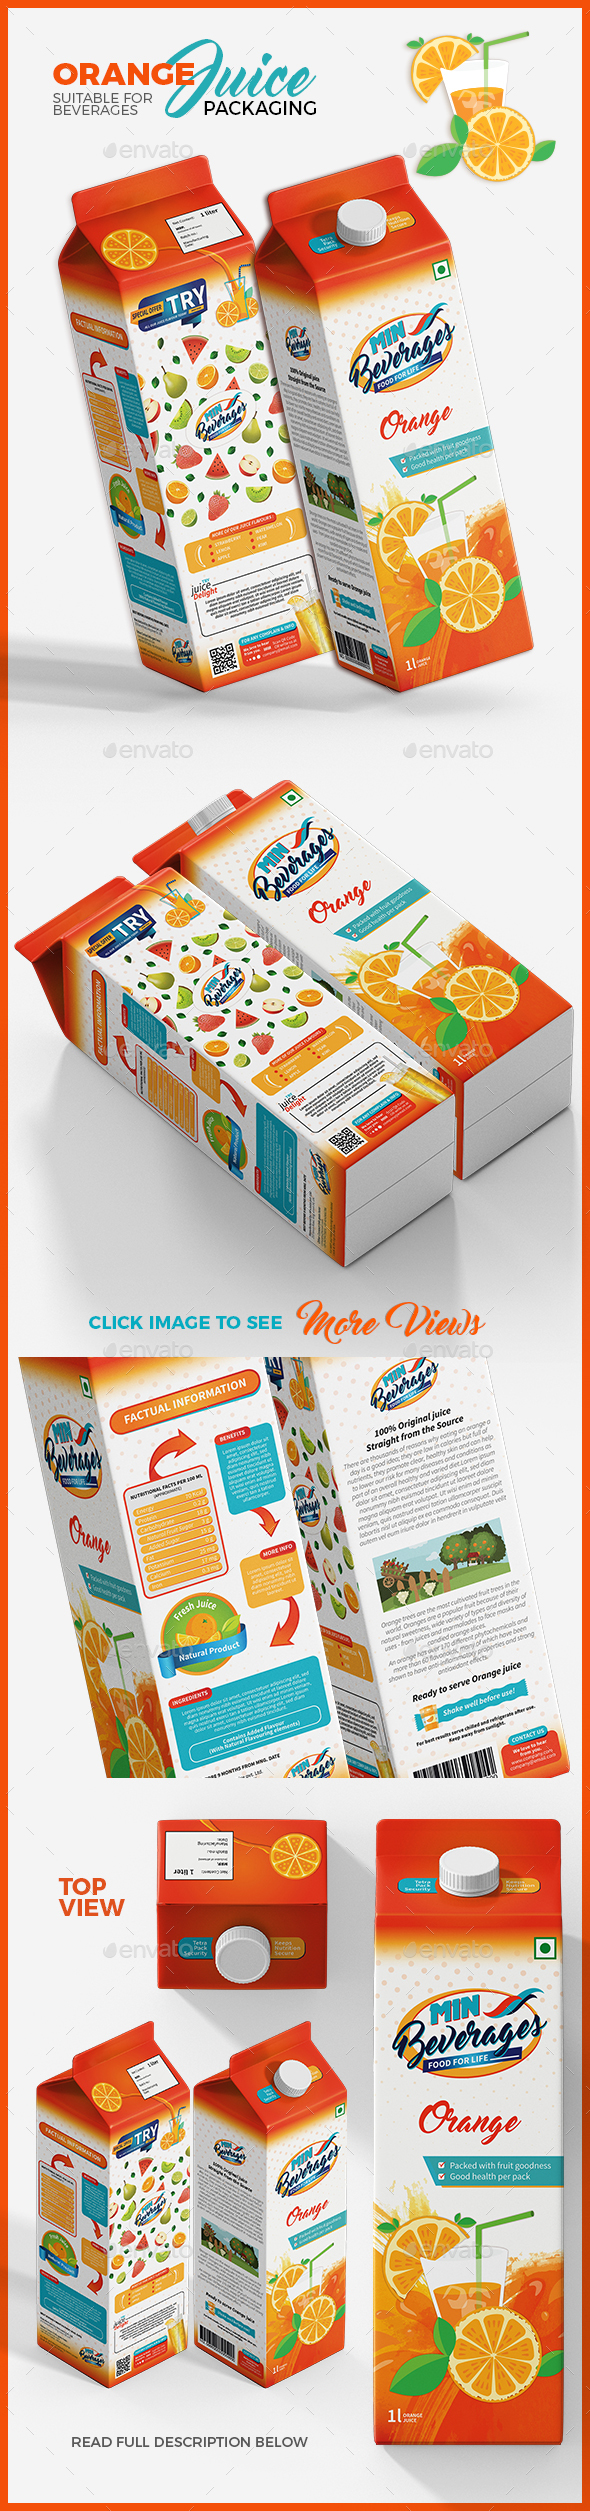 Orange Juice Packaging - Packaging Print Templates